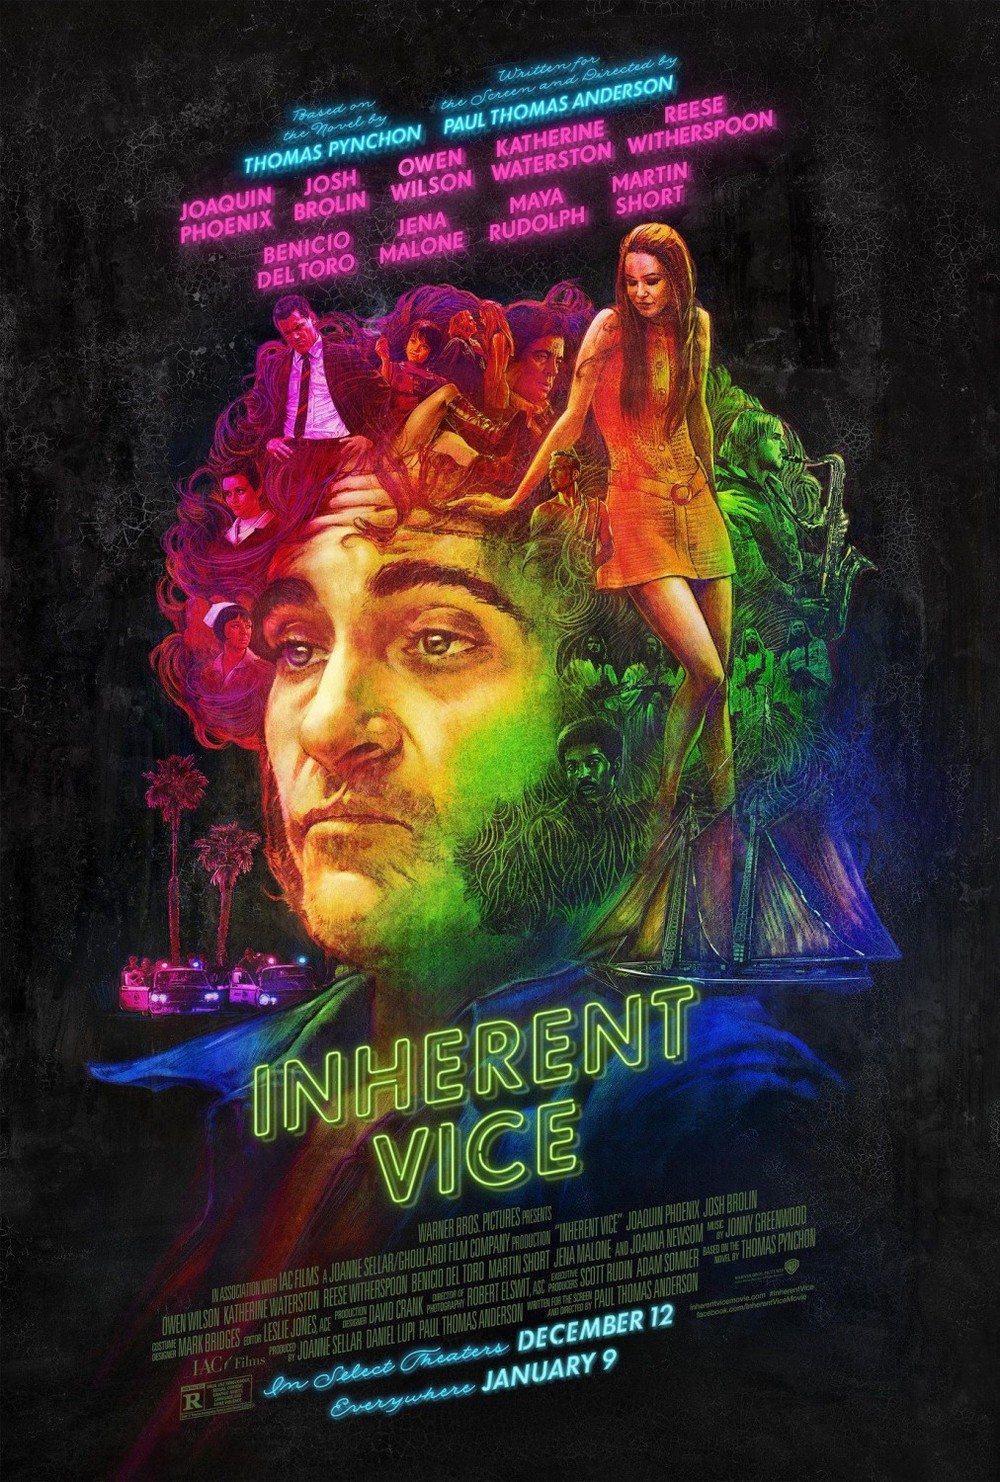 Inherent Vice definitely has some of the coolest posters I've ever seen.